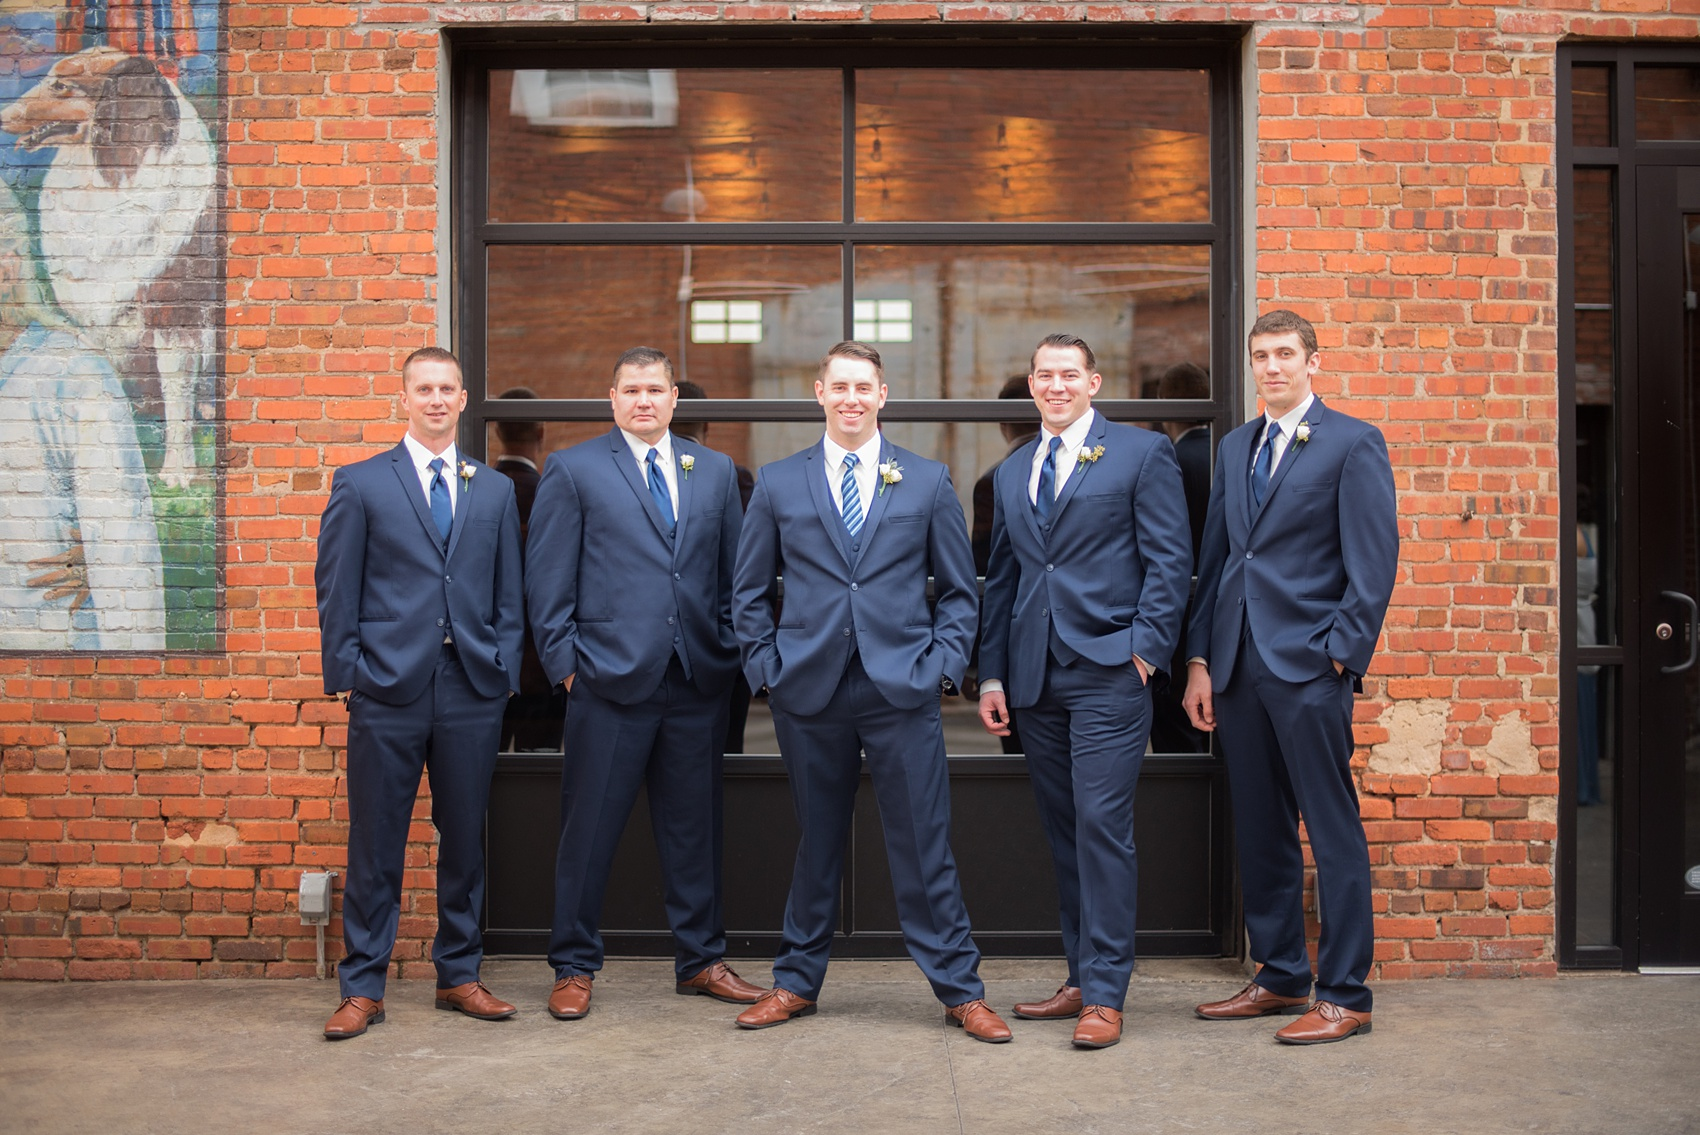 Durham wedding photos at The Cookery by Mikkel Paige Photography in North Carolina. The groomsmen wore navy blue suits with ties and brown shoes, posing for a picture in front of the brick urban outside of the venue.